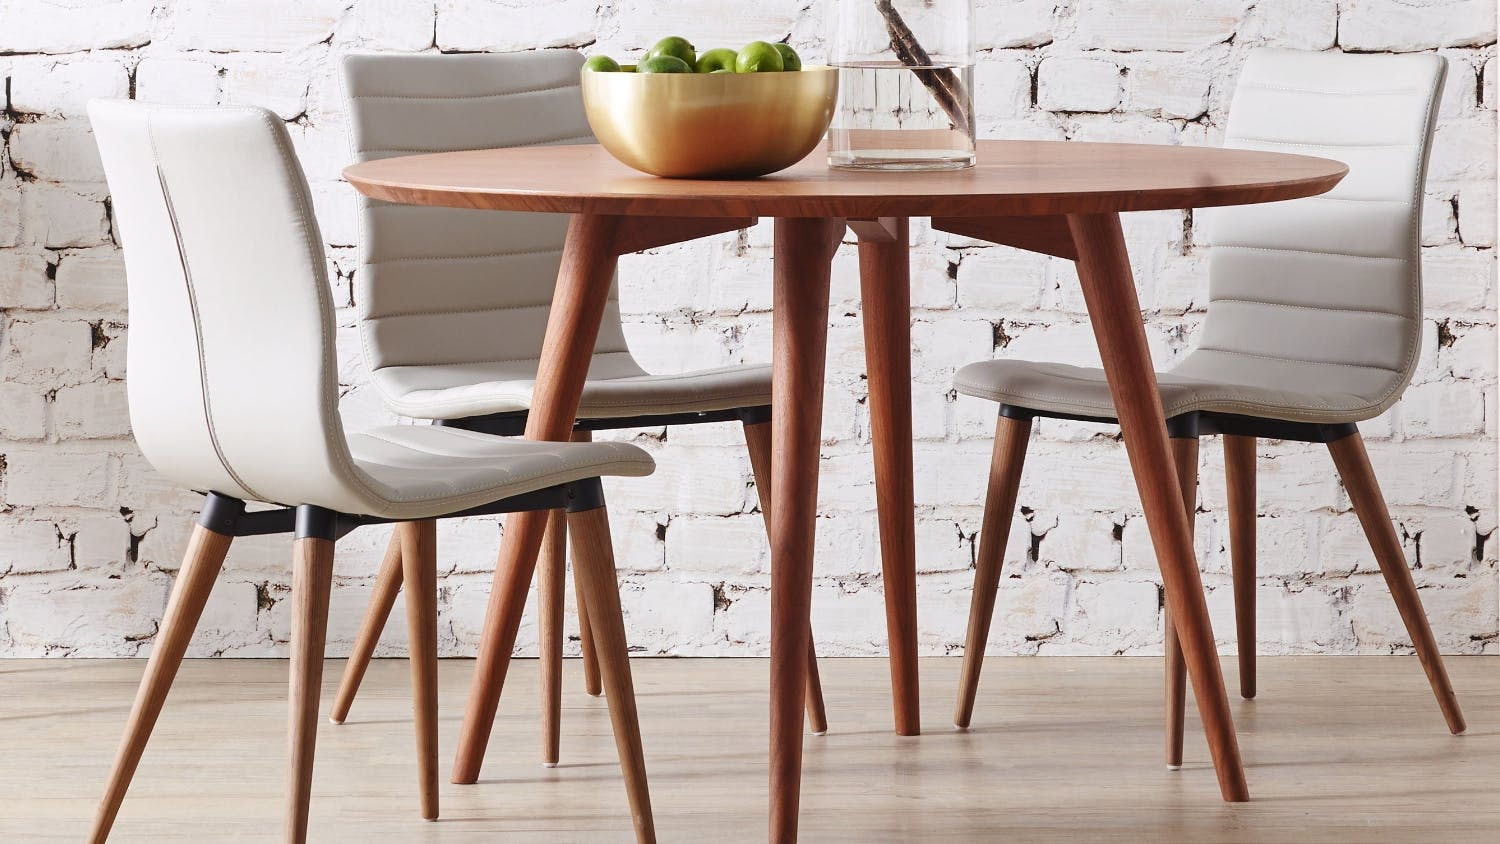 Furniture Dining Chairs Dining Tables Stools Bar Stool Domayne